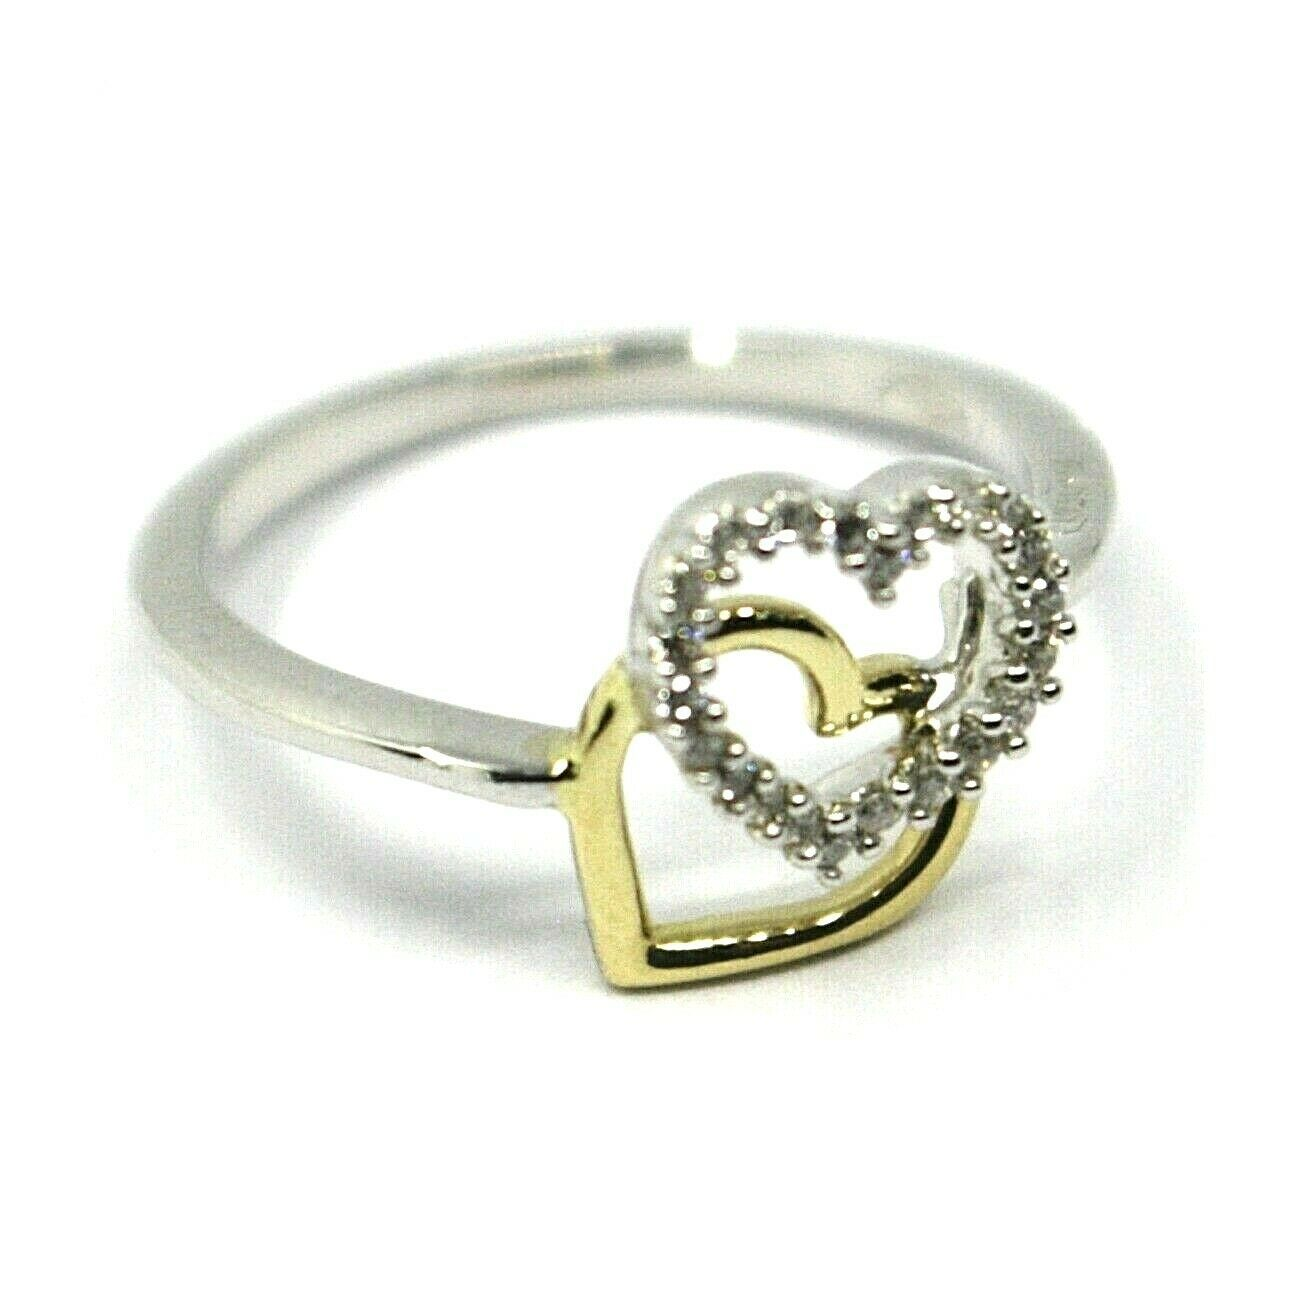 SOLID 18K YELLOW WHITE GOLD DOUBLE HEART RING WITH CUBIC ZIRCONIA